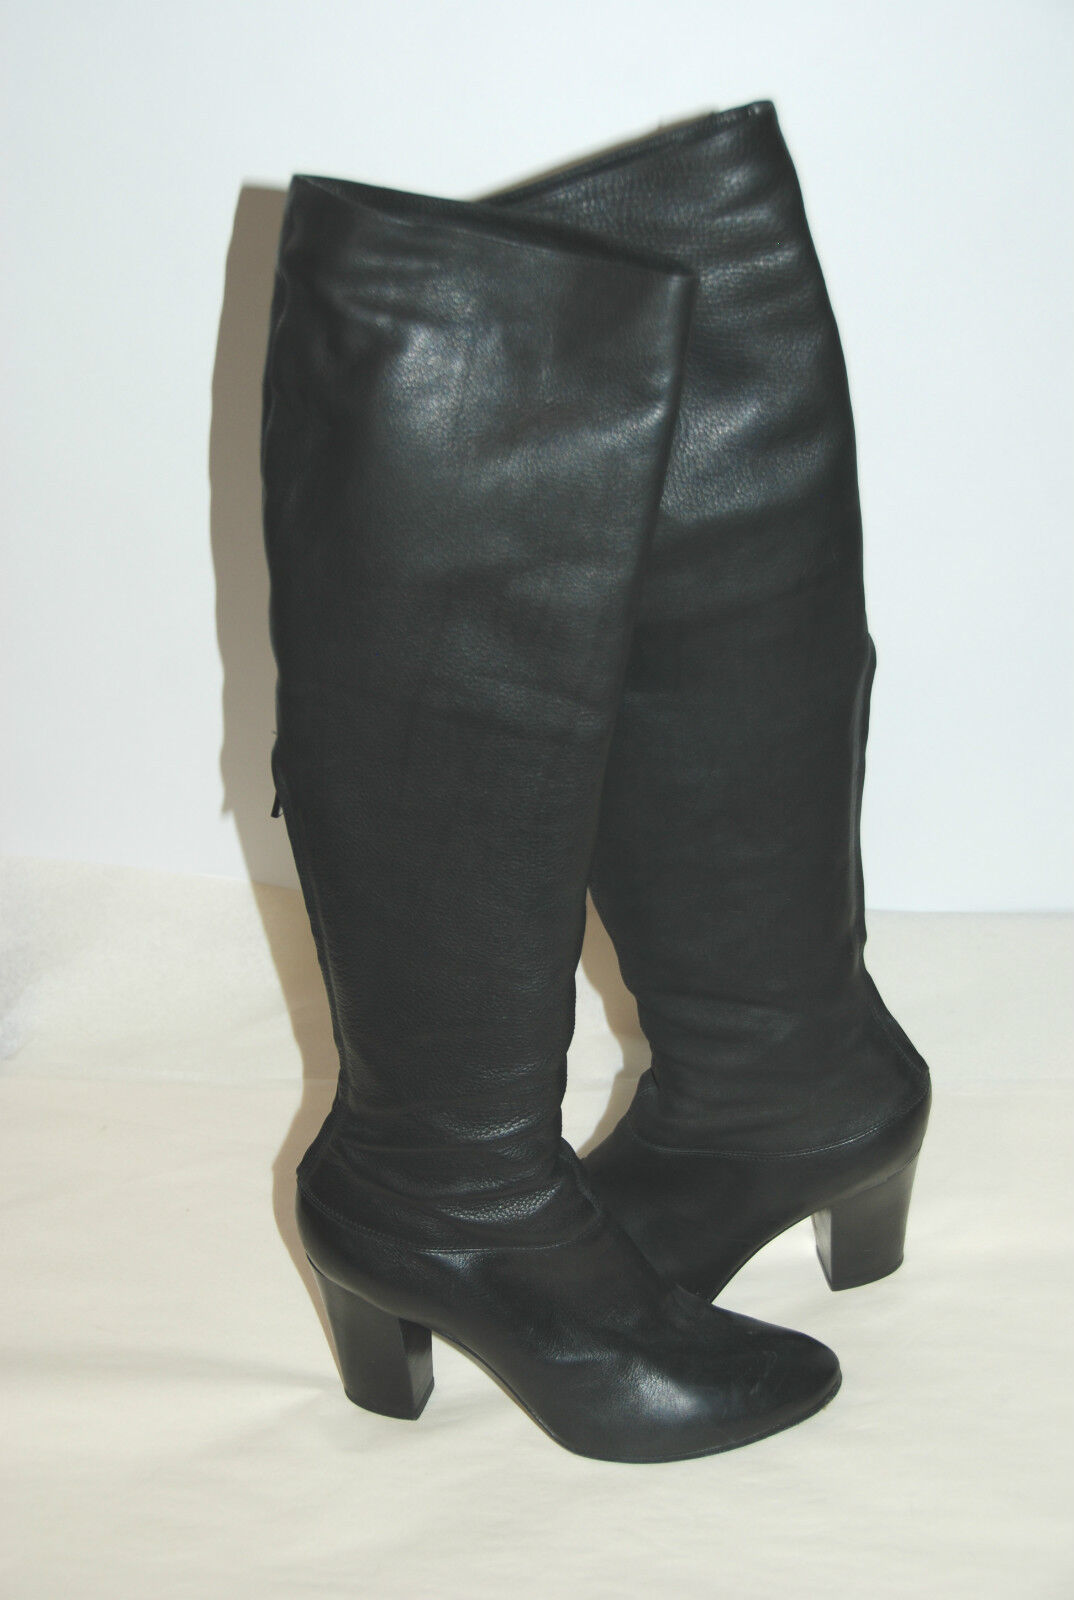 SIGERSON MORRISON 10 KNEE HIGH BLACK ROUND TOE BOOTS SZ 7.5